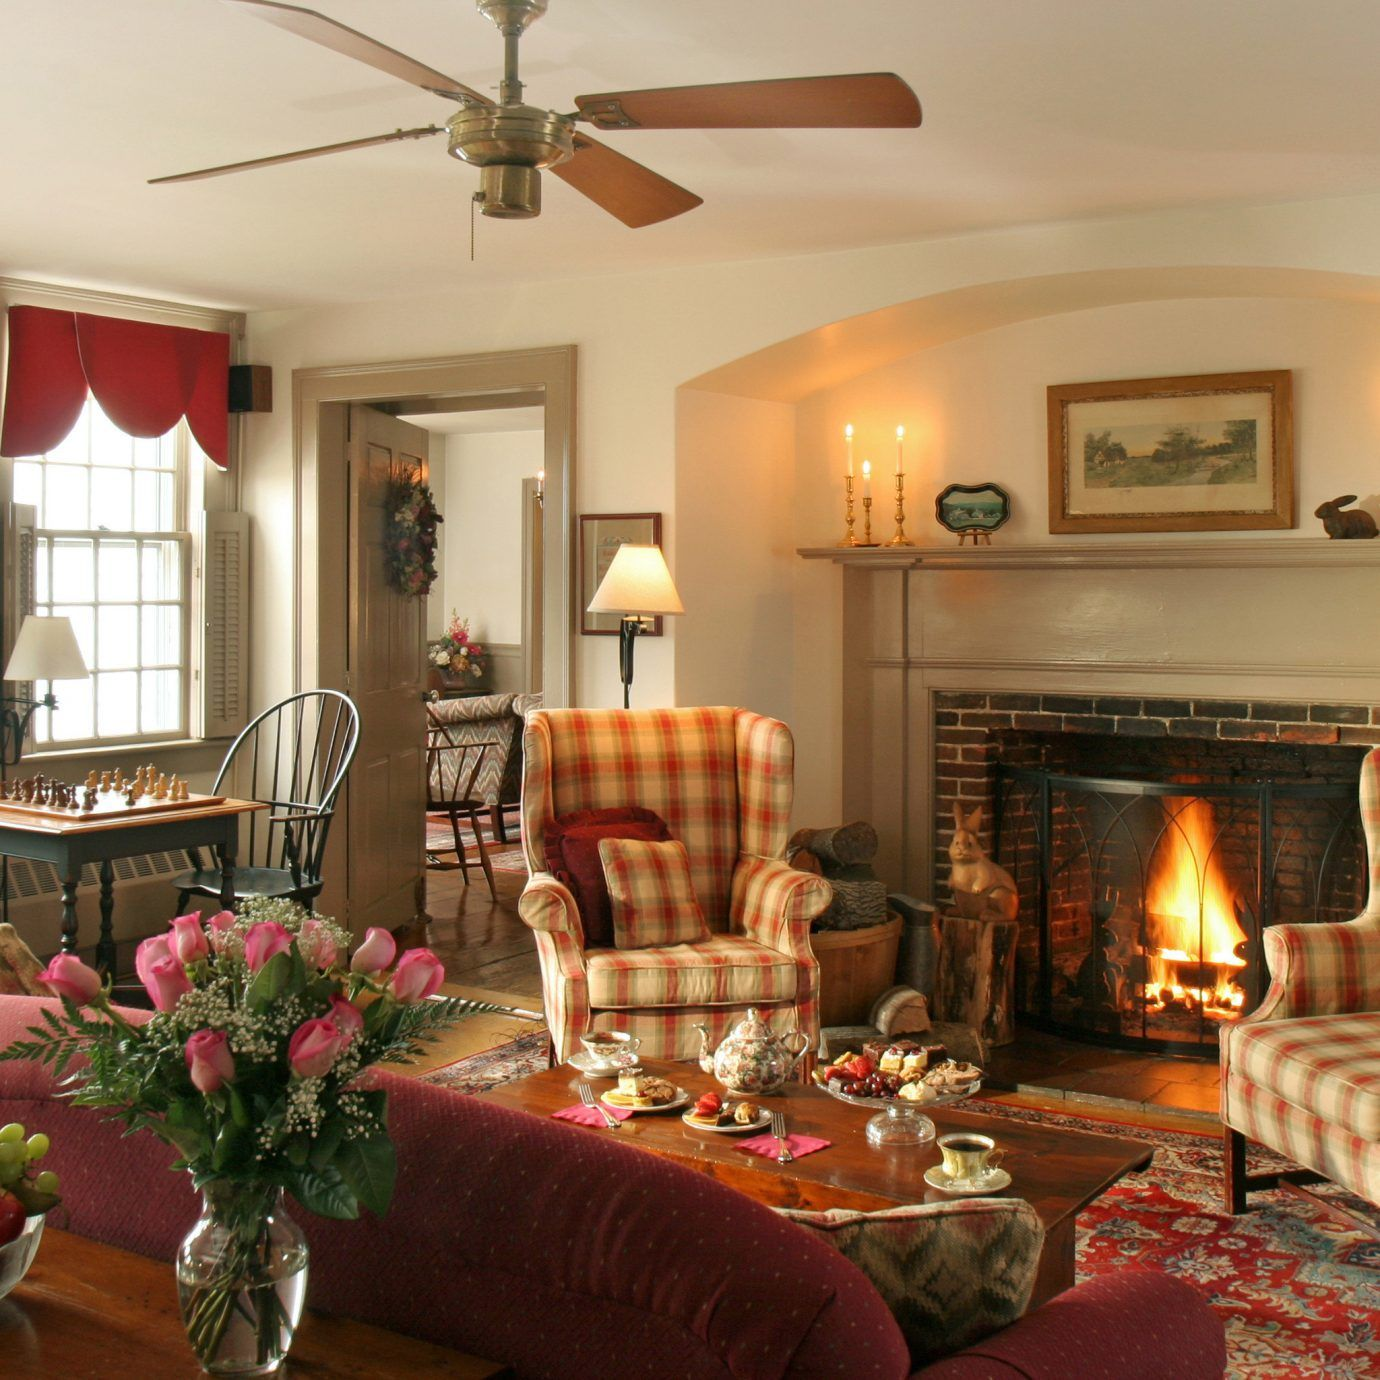 The 7 BEST Bed and Breakfasts in New England (with Prices